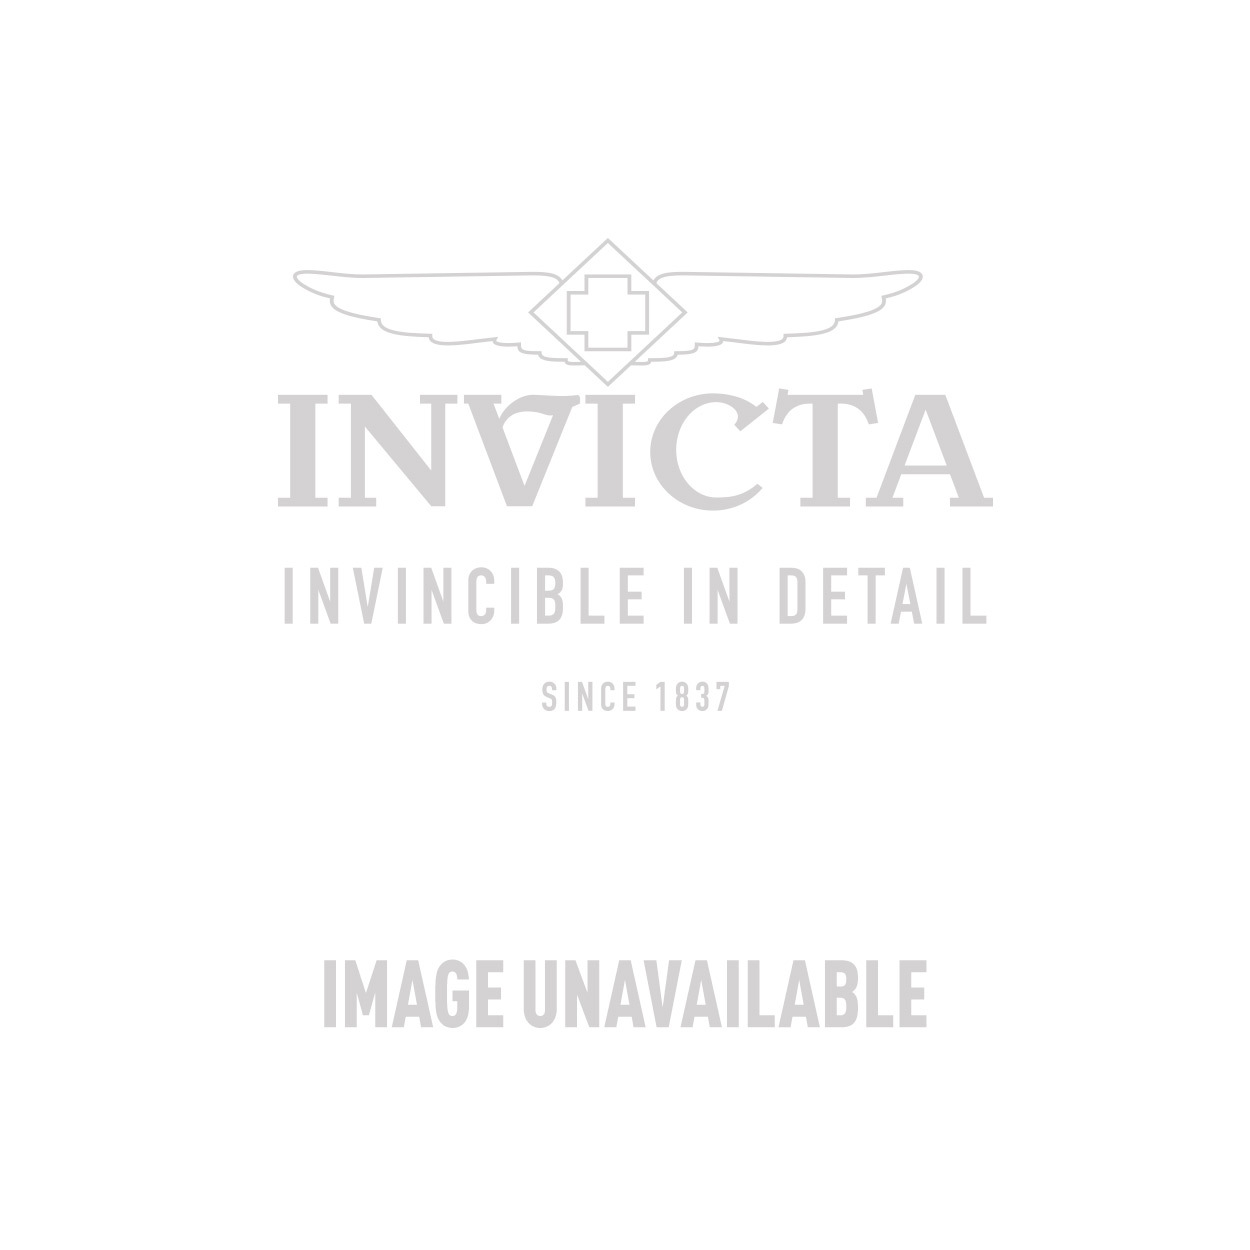 Invicta Bolt Swiss Made Quartz Watch - Black case with Steel, Black tone Stainless Steel band - Model 12901